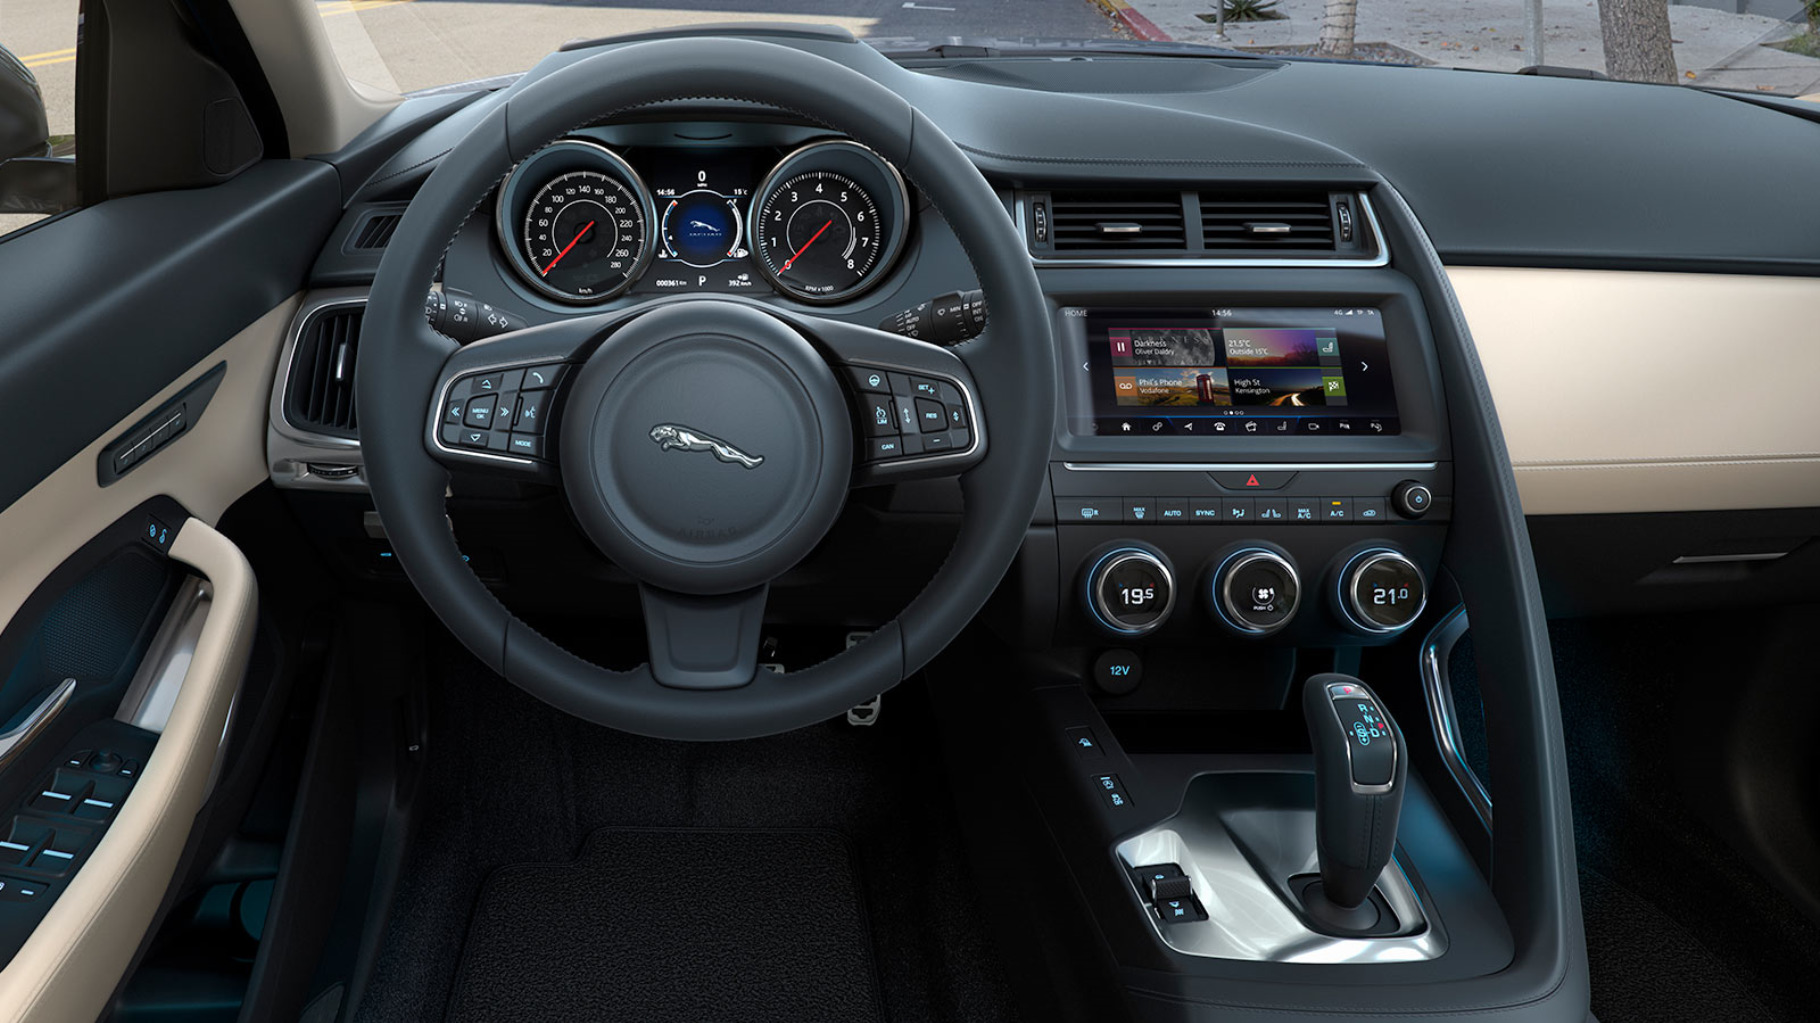 Close-up of Jaguar E-Pace Cockpit.